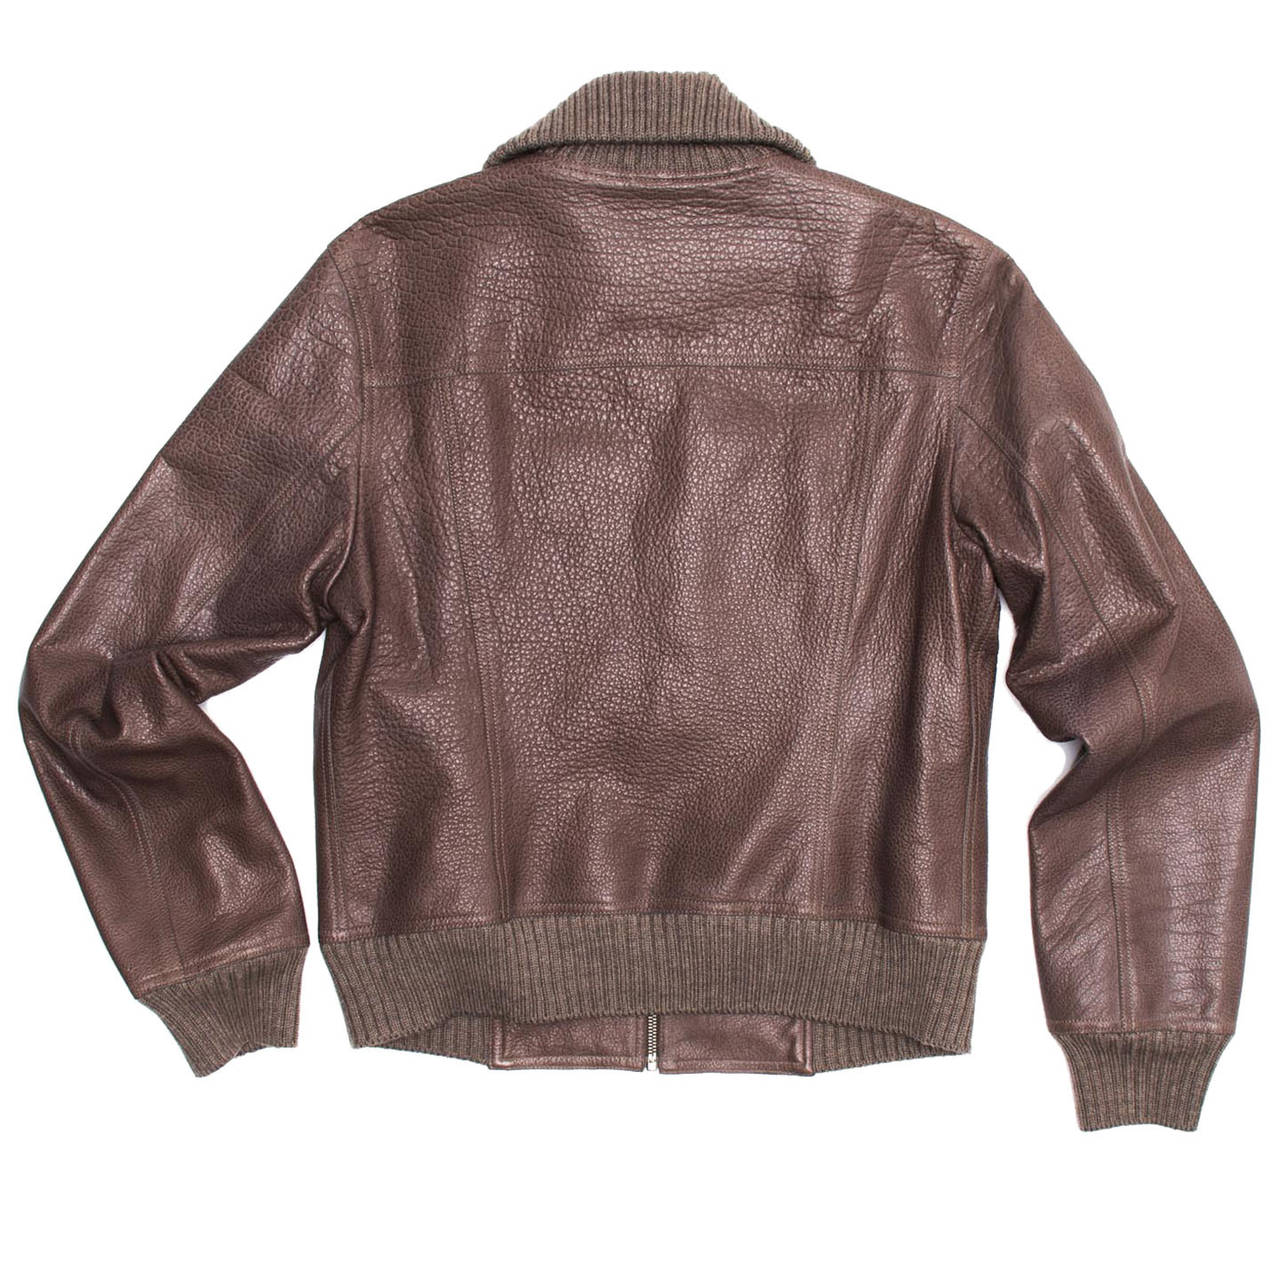 hermes mens bag - Hermes Brown Bison Bomber Style Jacket For Sale at 1stdibs